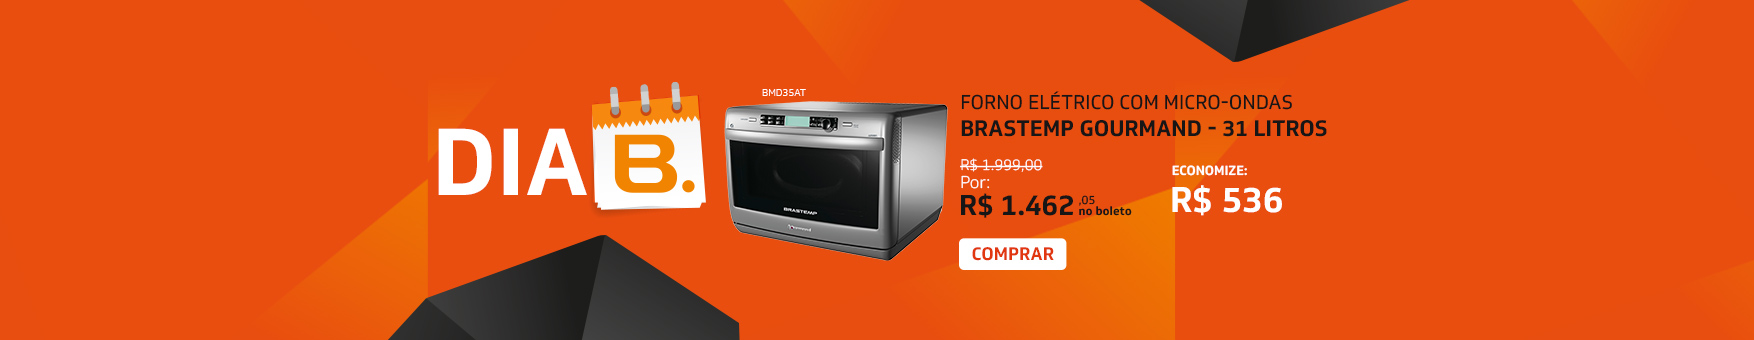 Promoção Interna - 107 - diab_bmd35at_home_3072015 - bmd35at - 1